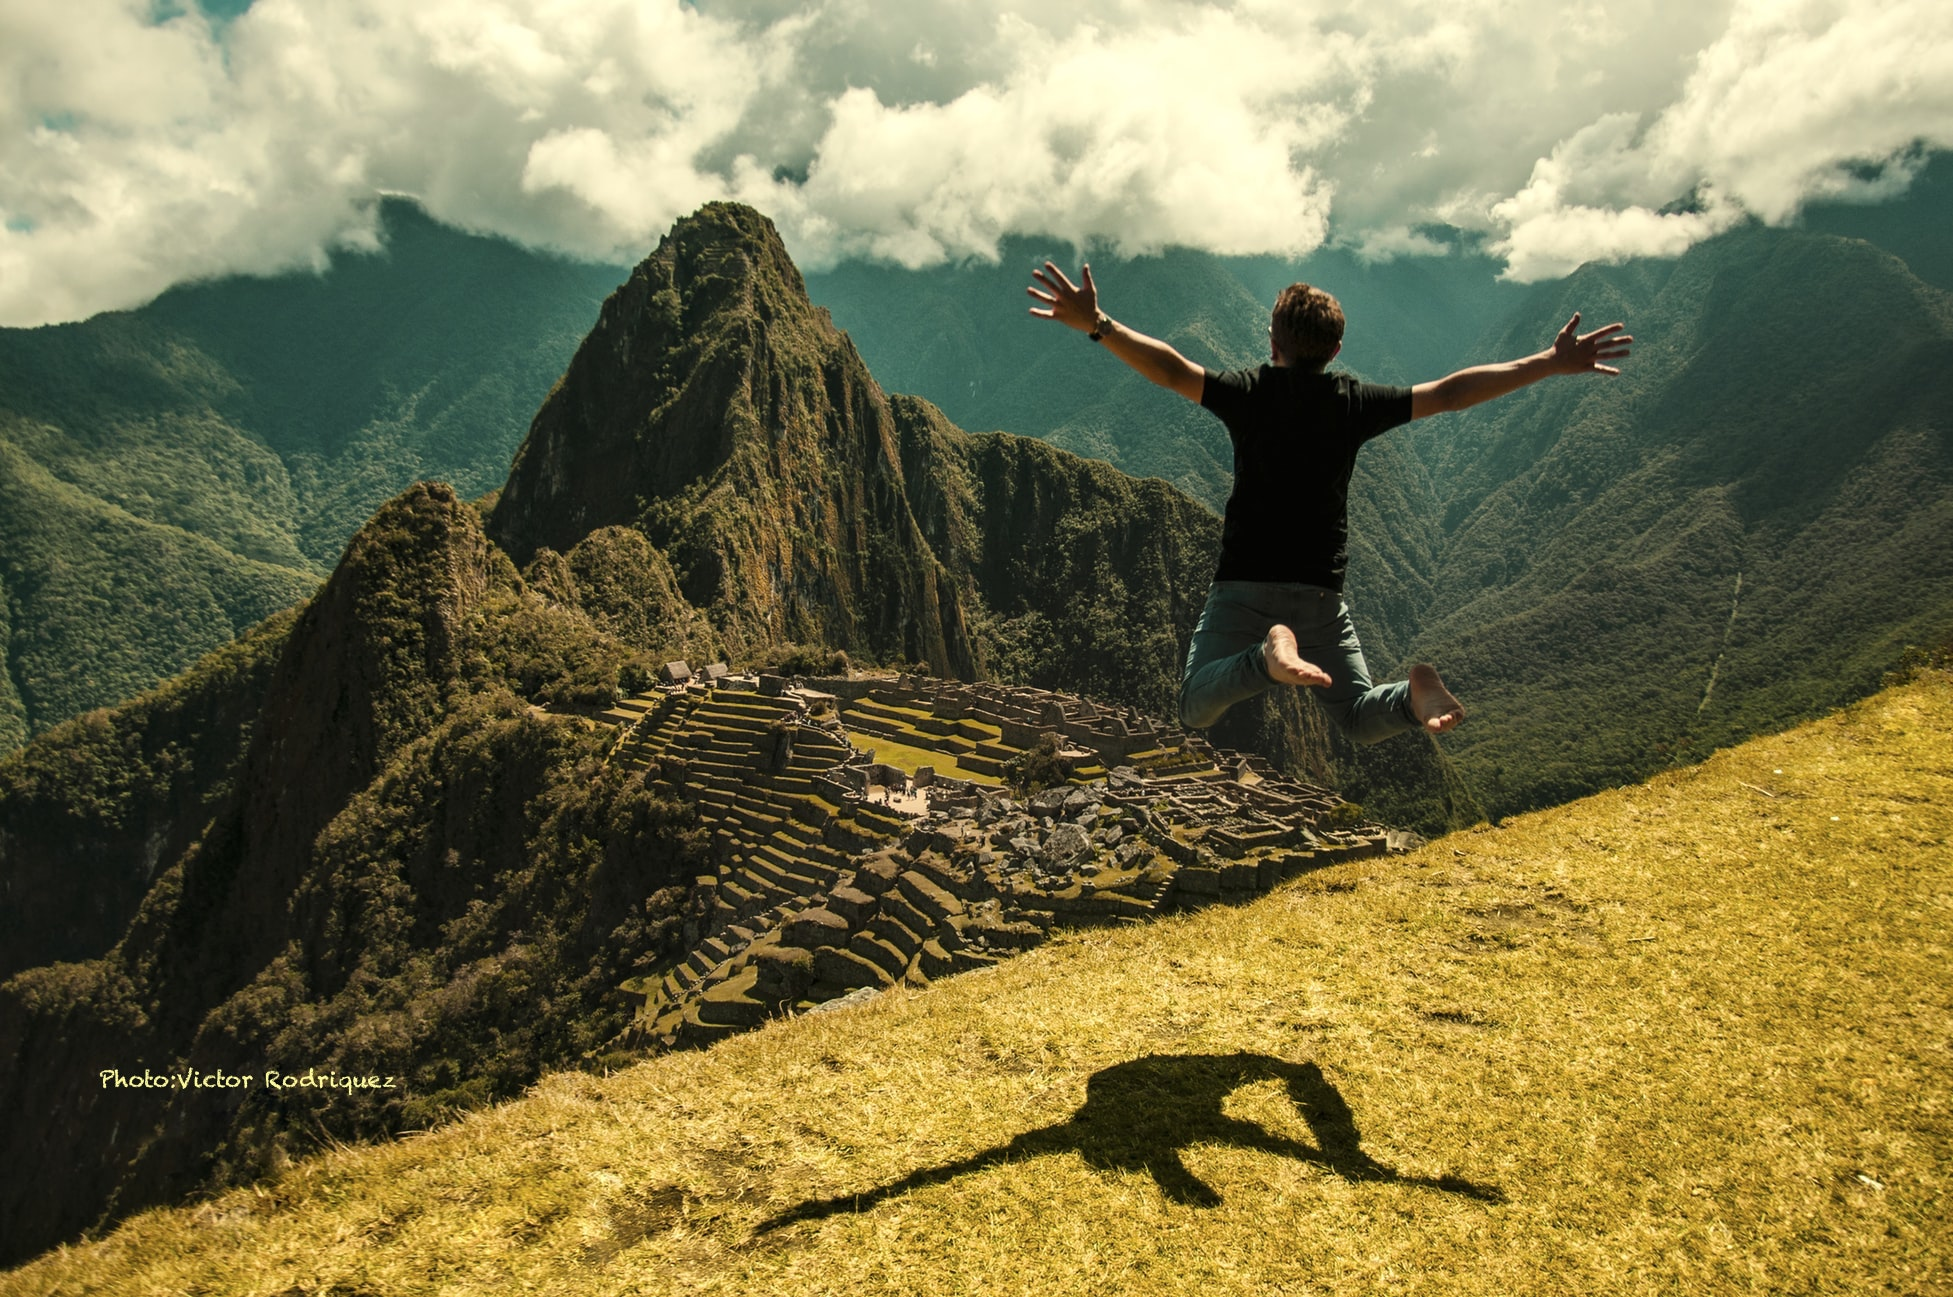 Peru:Inca Inspiration 11 days 10 nights